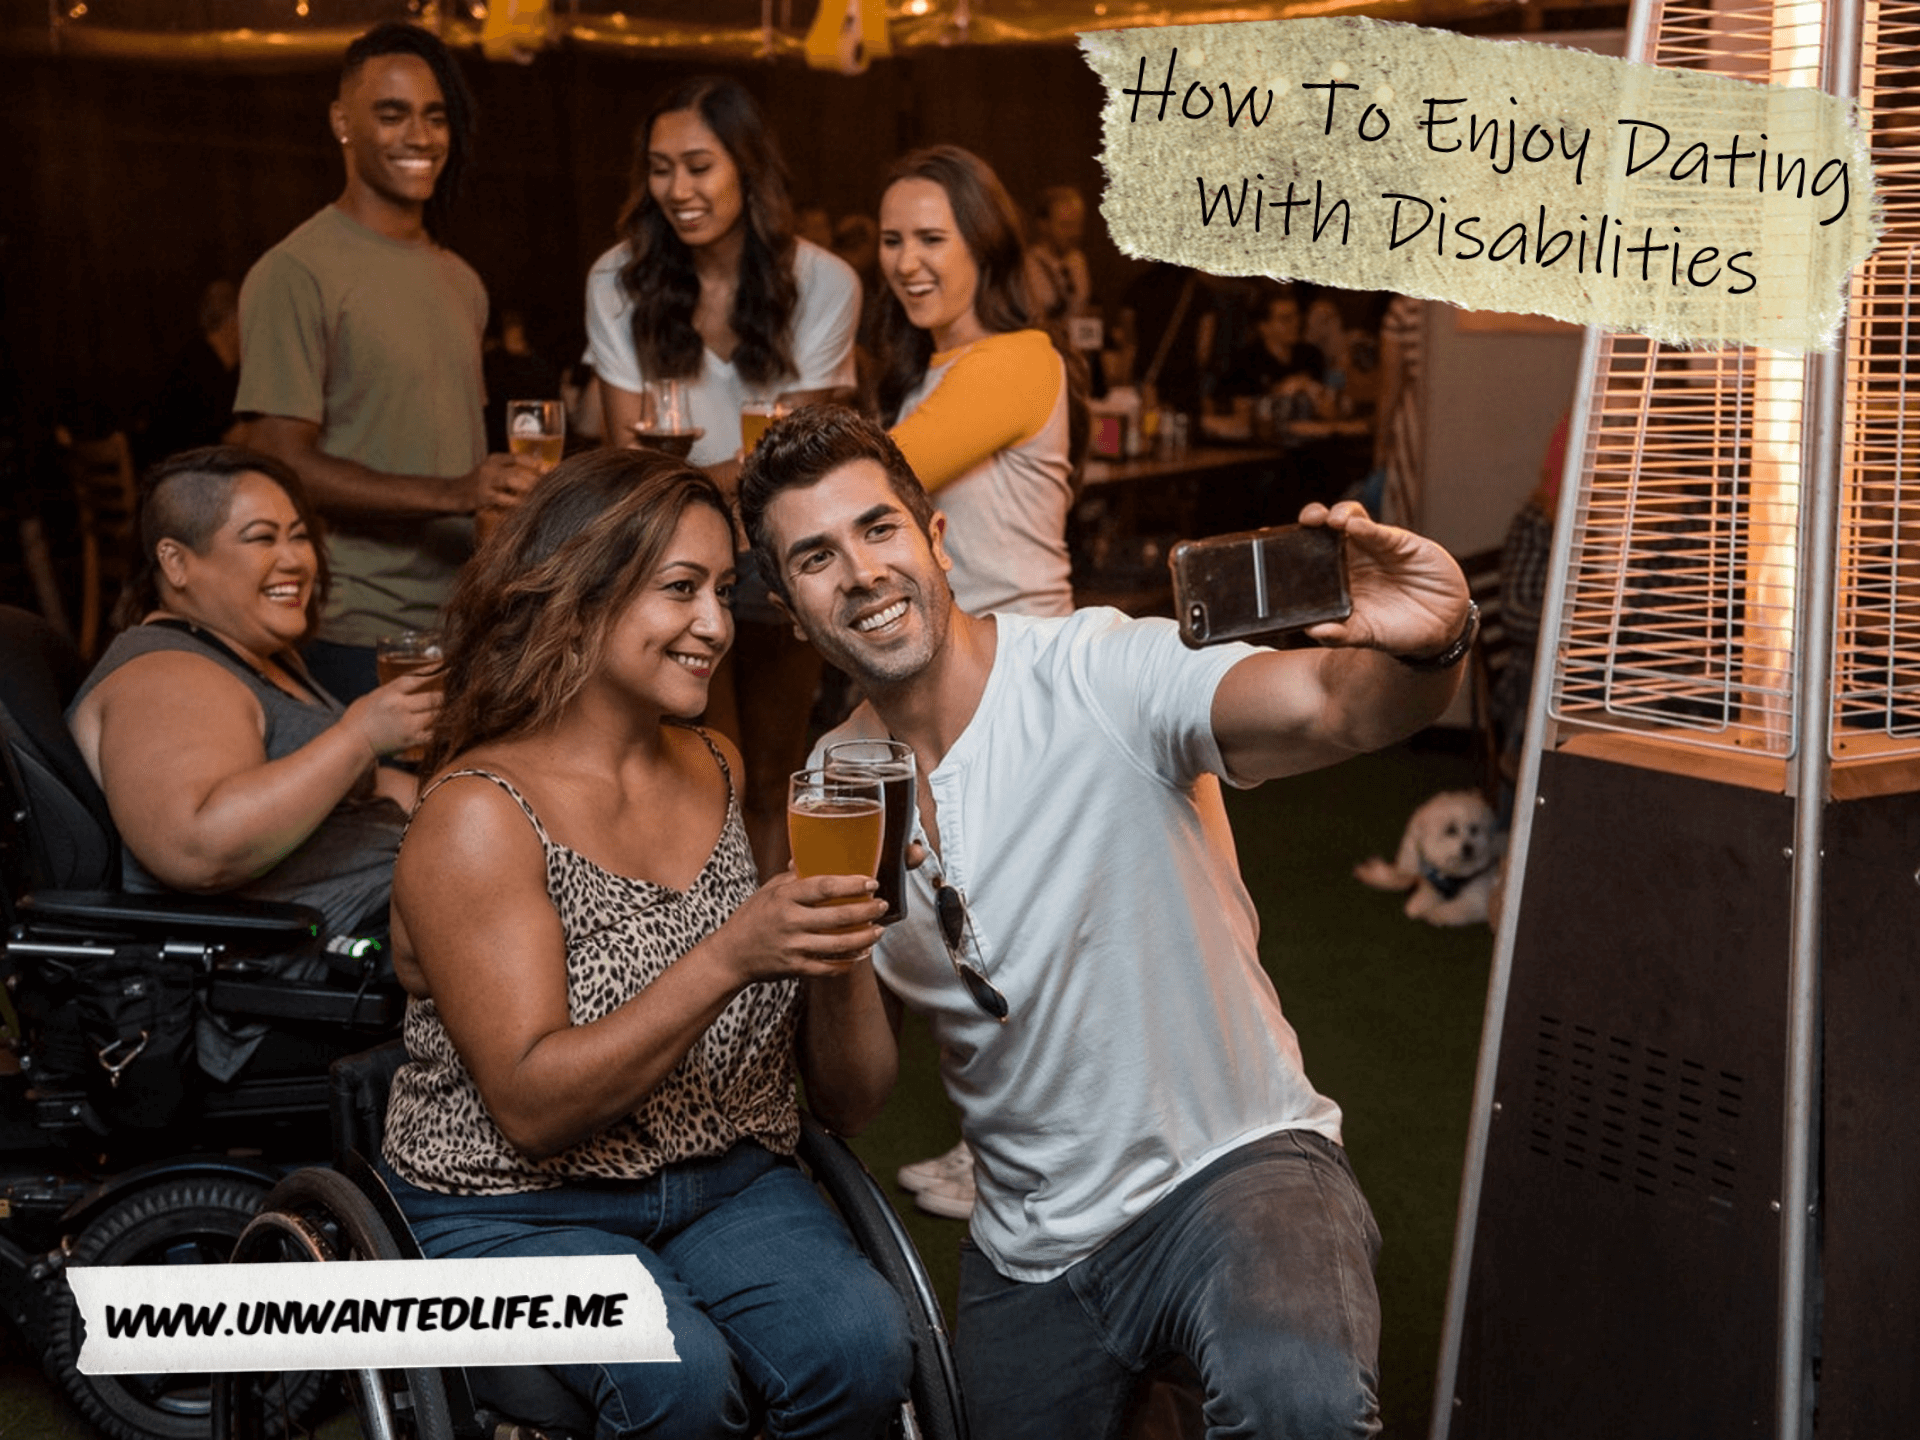 A couple enjoying a drink in a pub beer garden to represent the topic of the article - How To Enjoy Dating With Disabilities | Romance and Relationships | Unwanted Life